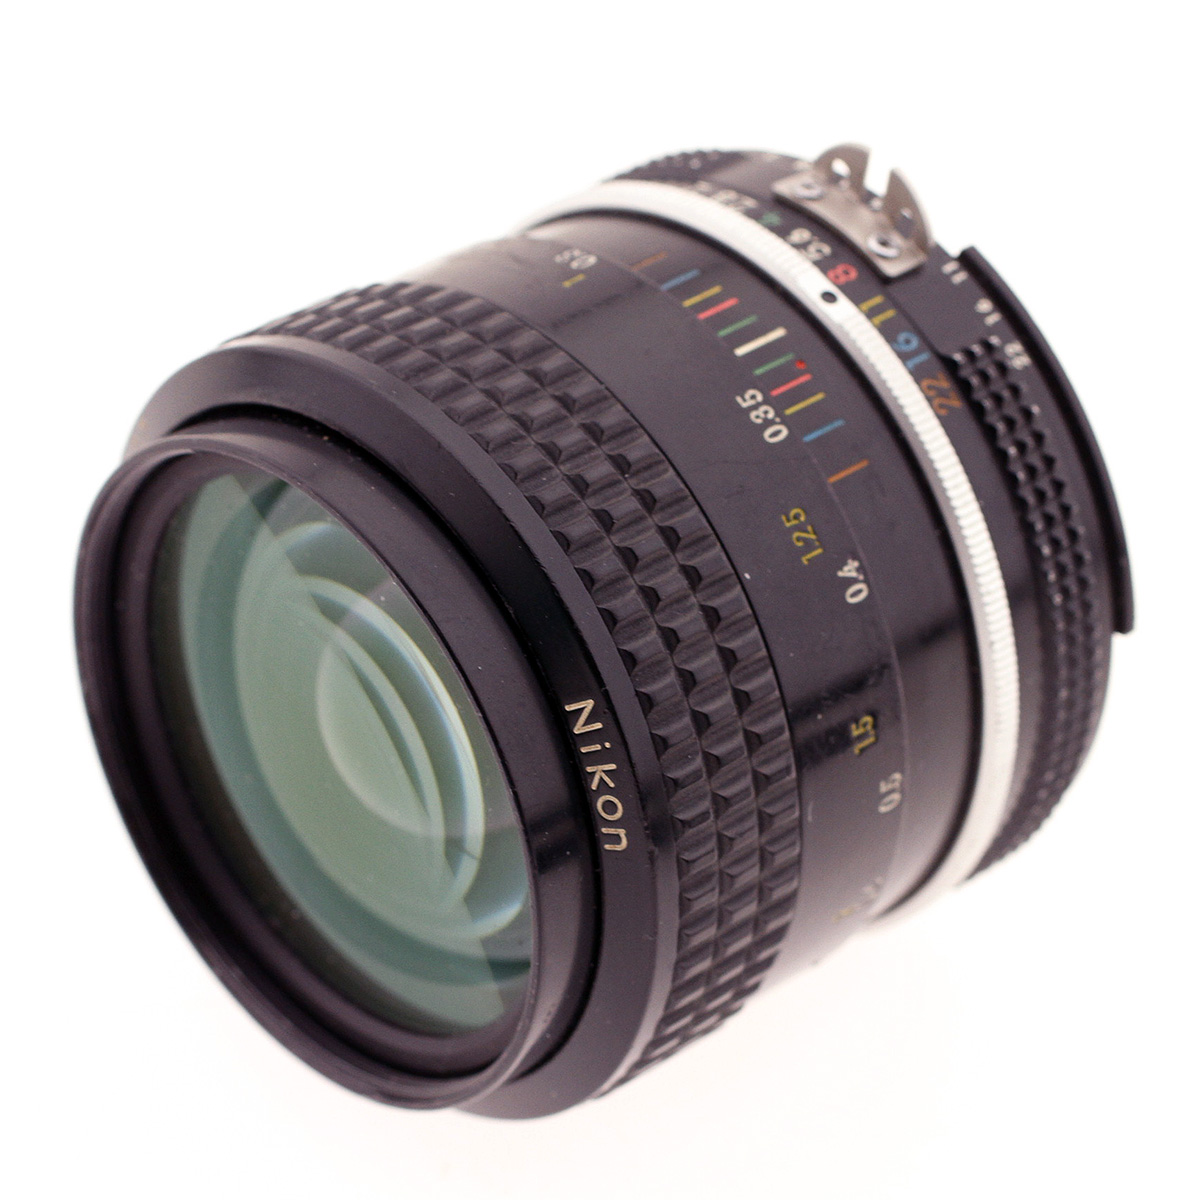 USED NIKON 105MM 2.5 AI LENS